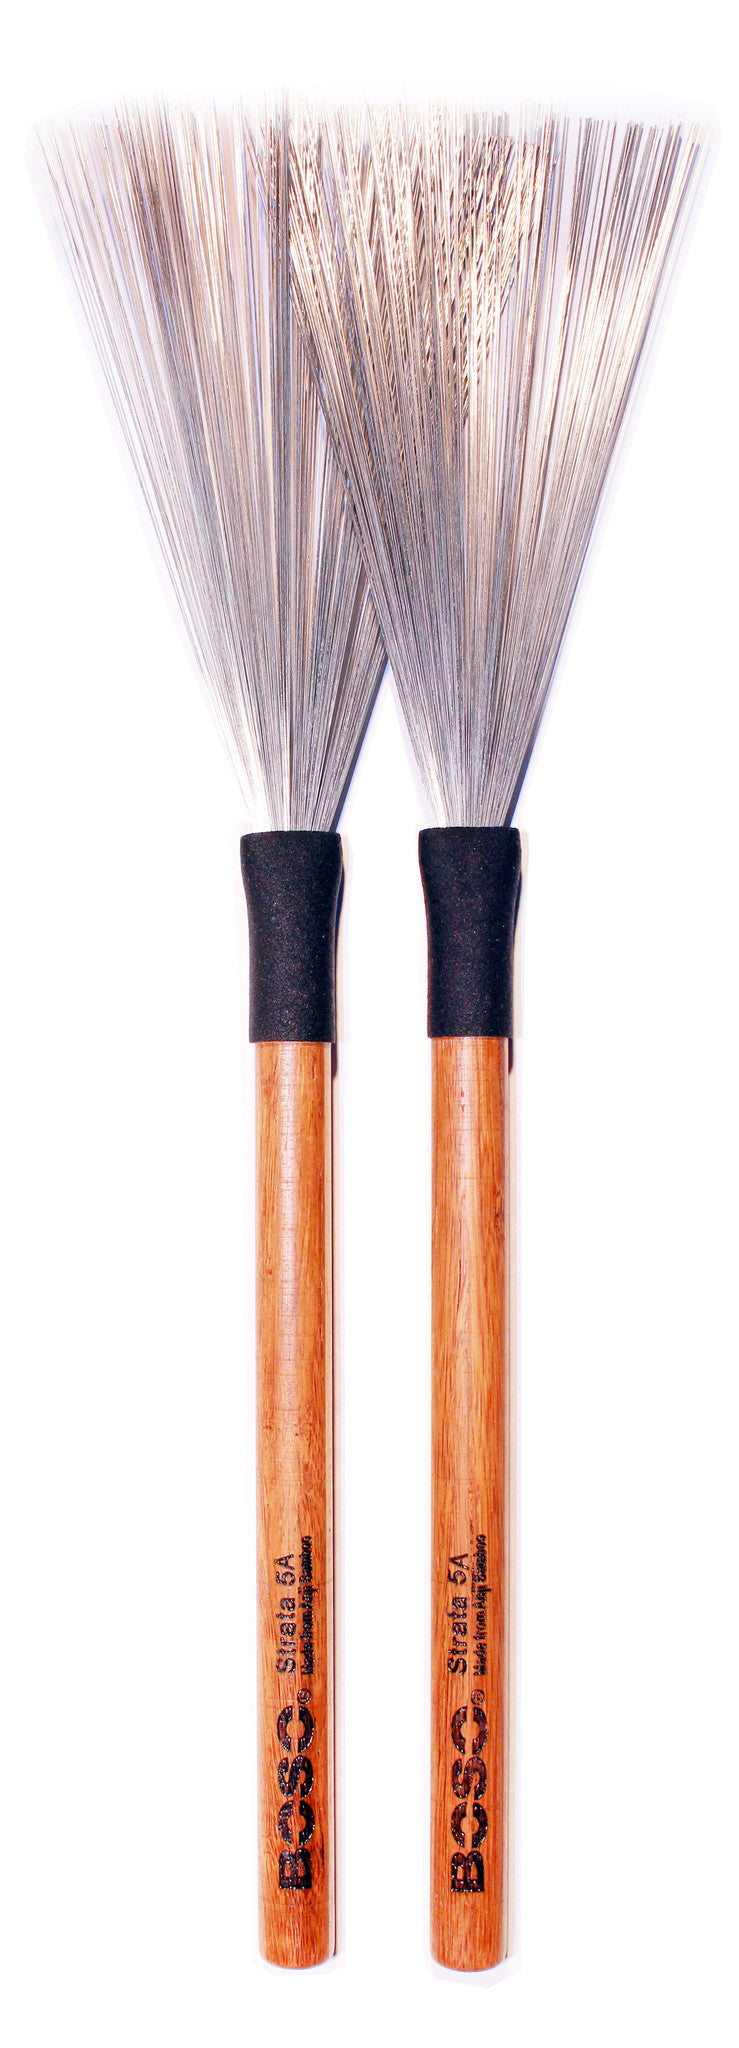 Boso Strata Fixed Handle Brushes